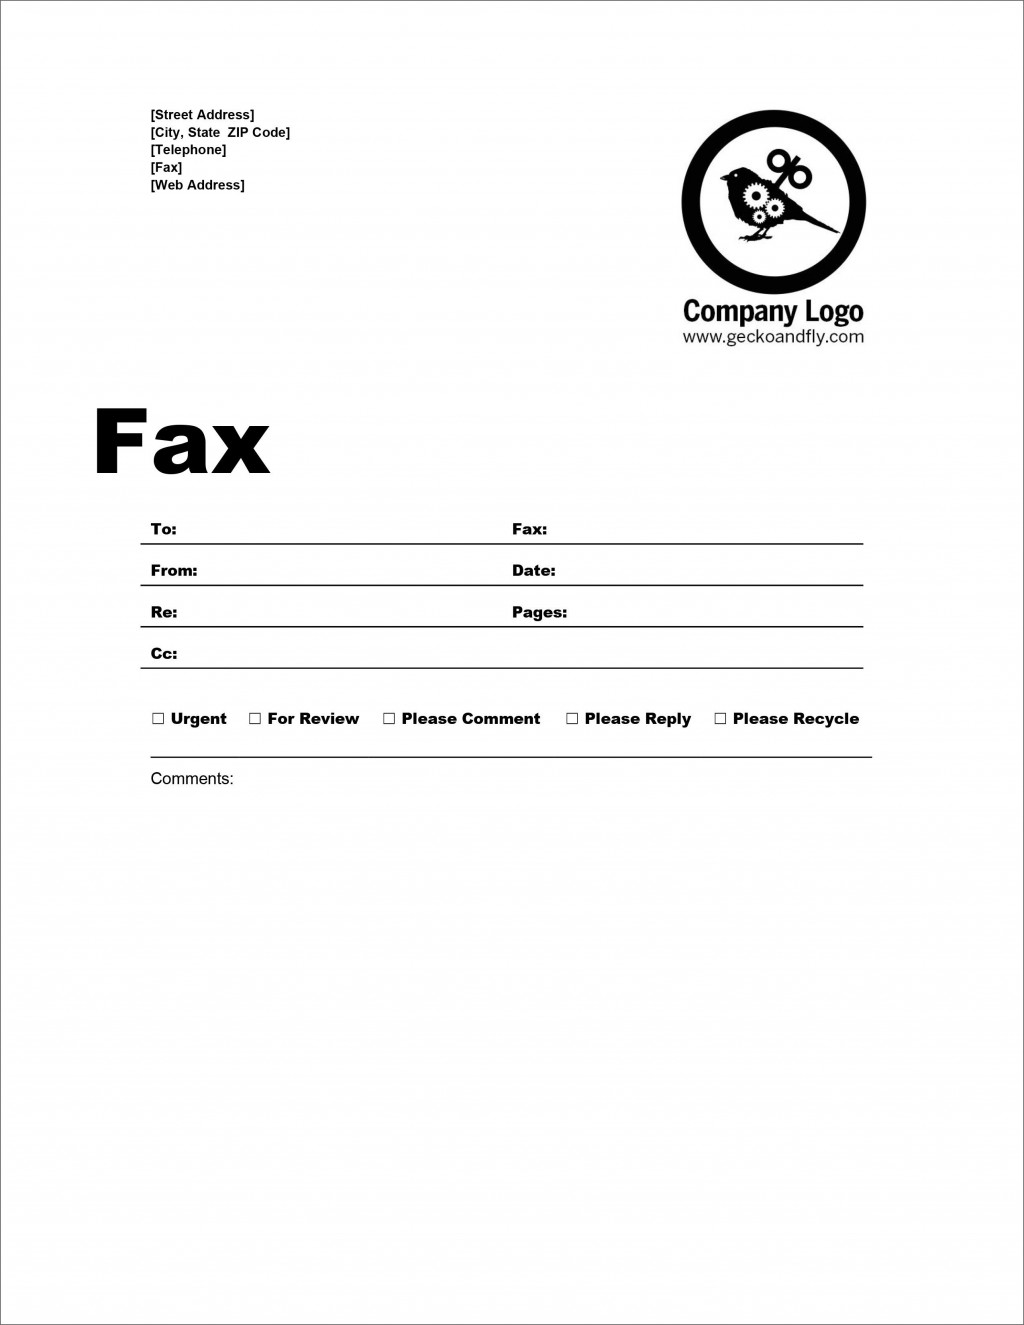 007 Imposing Fax Template Microsoft Word Inspiration  Cover Sheet 2010 Letter BusinesLarge